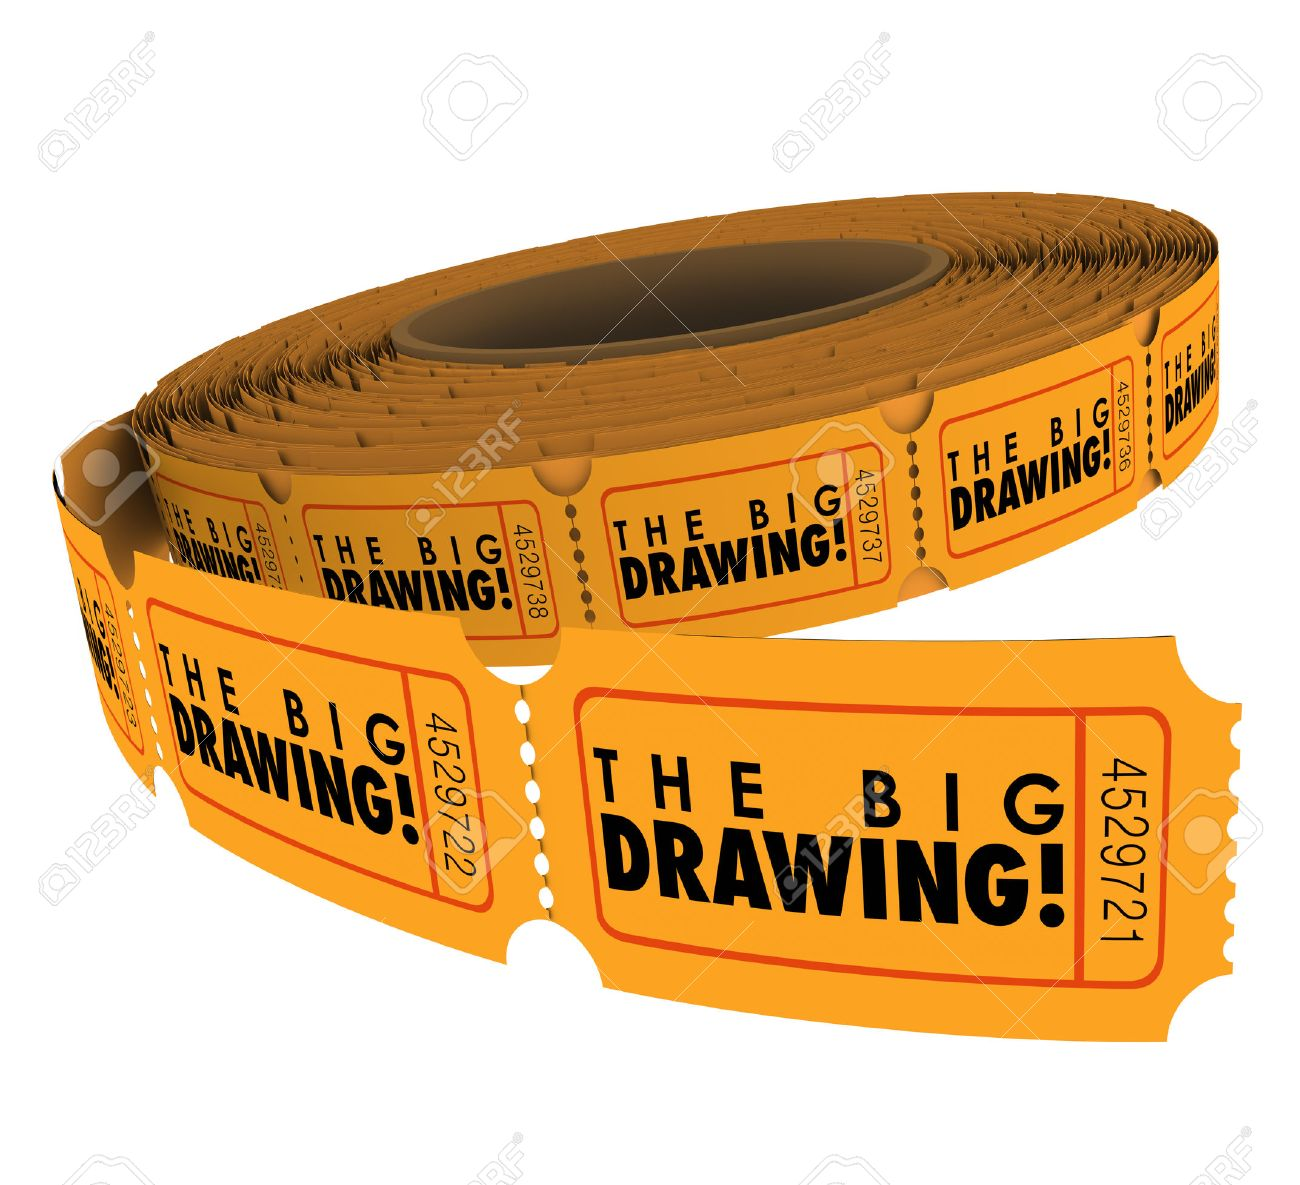 raffle ticket stock photos images royalty raffle ticket raffle ticket the big drawing words on a roll of raffle or contest tickets you